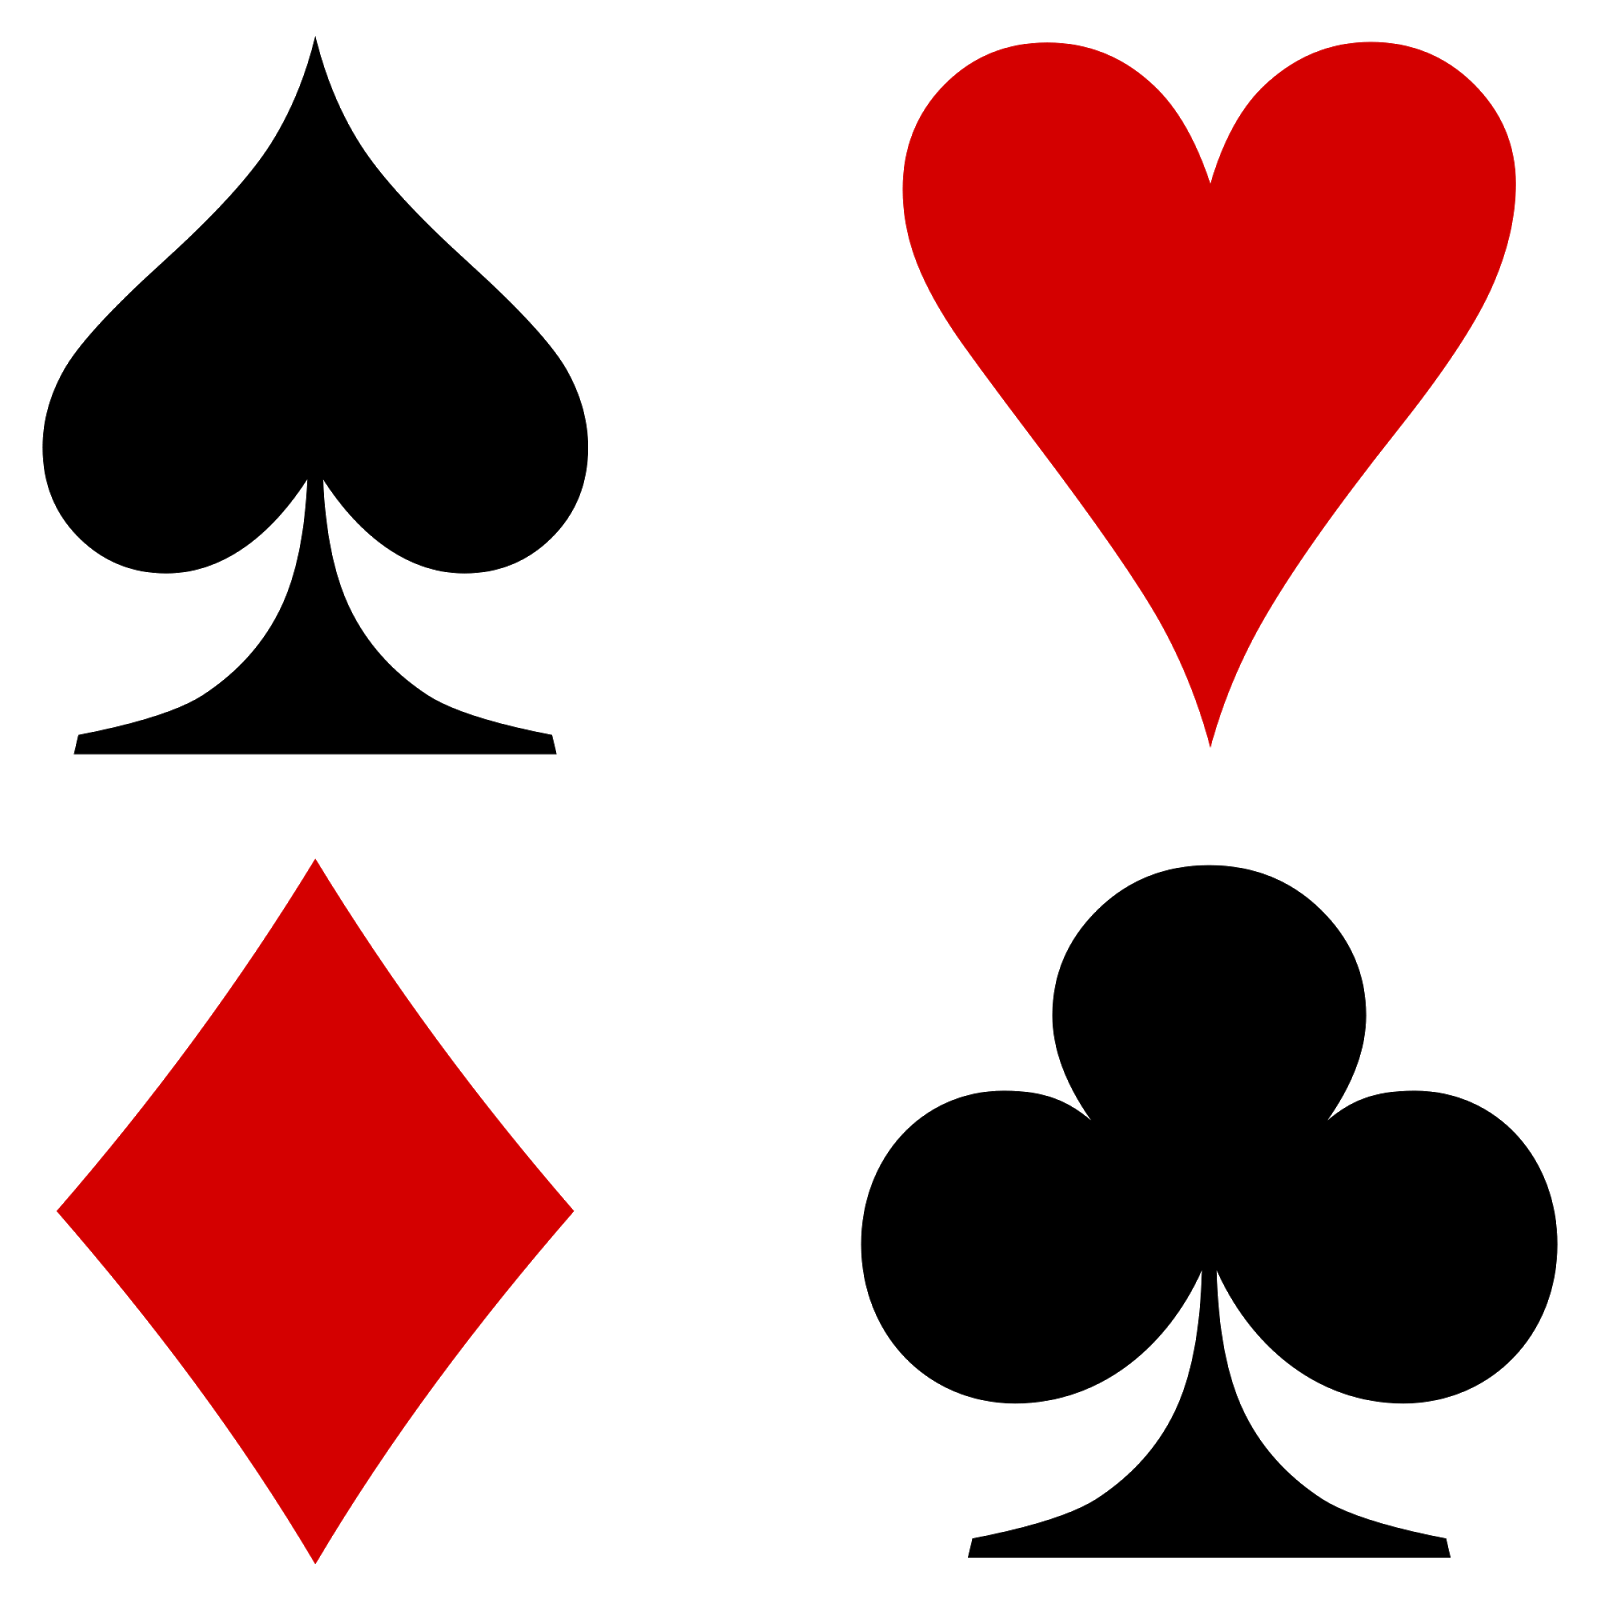 Playing Cards Images   Free download best Playing Cards Images on